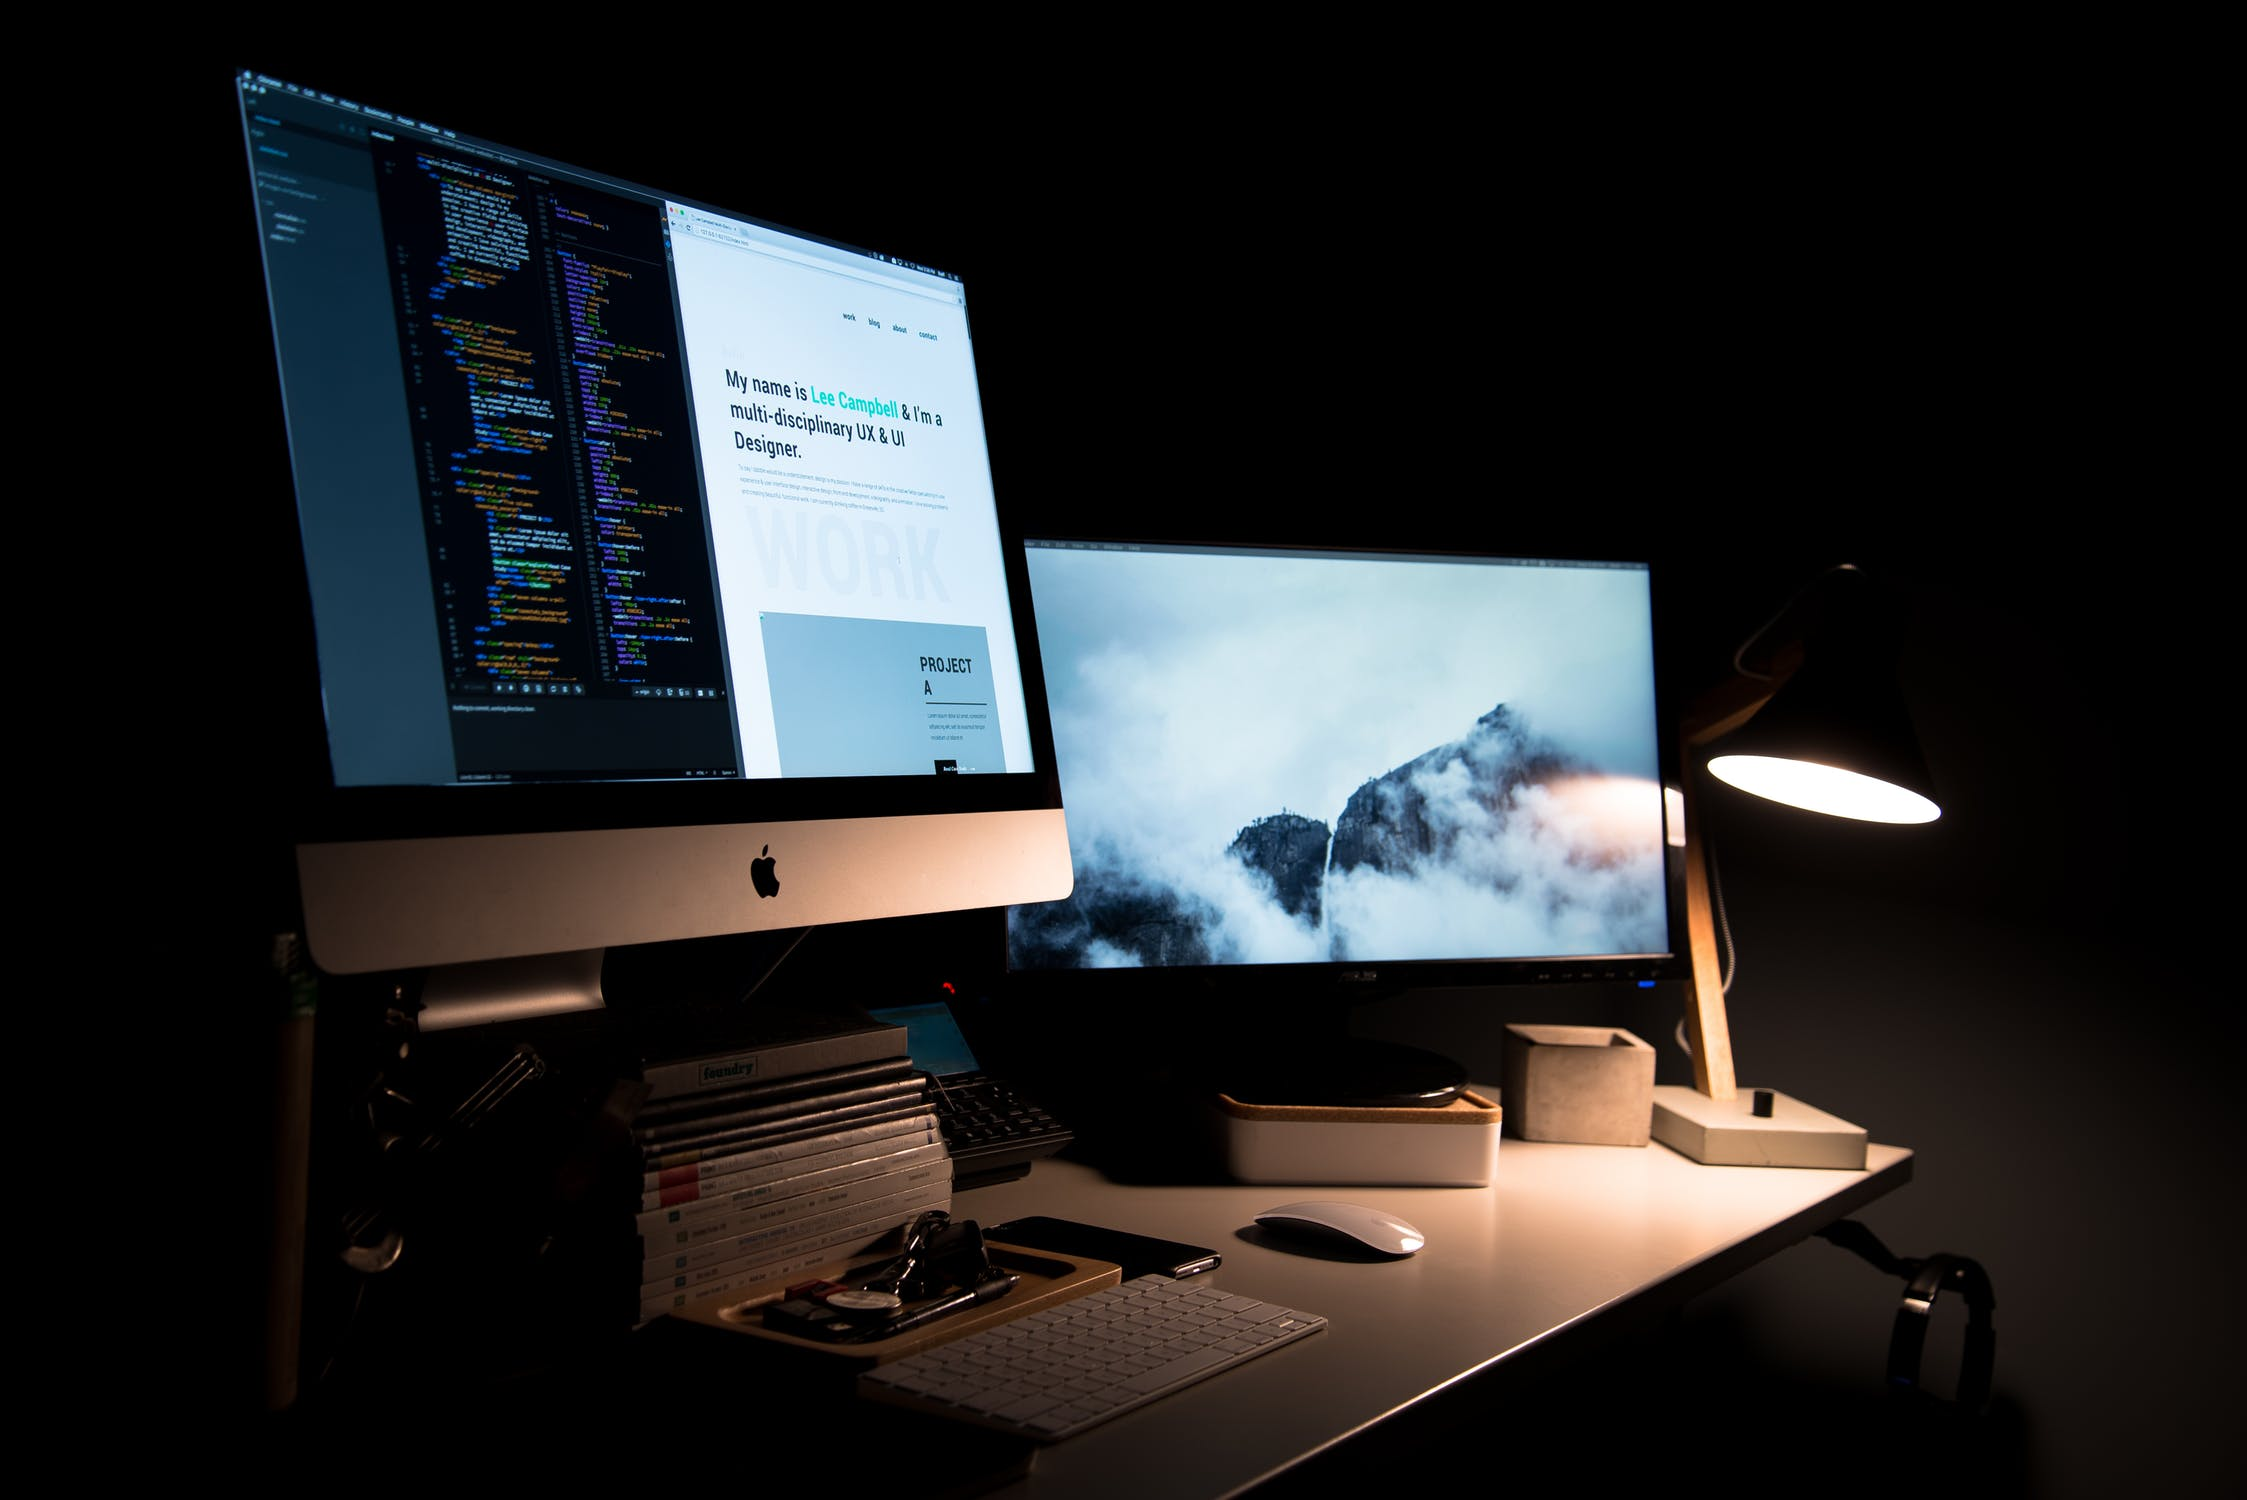 3 Tips For Keeping Your Mac Running In Prime Condition